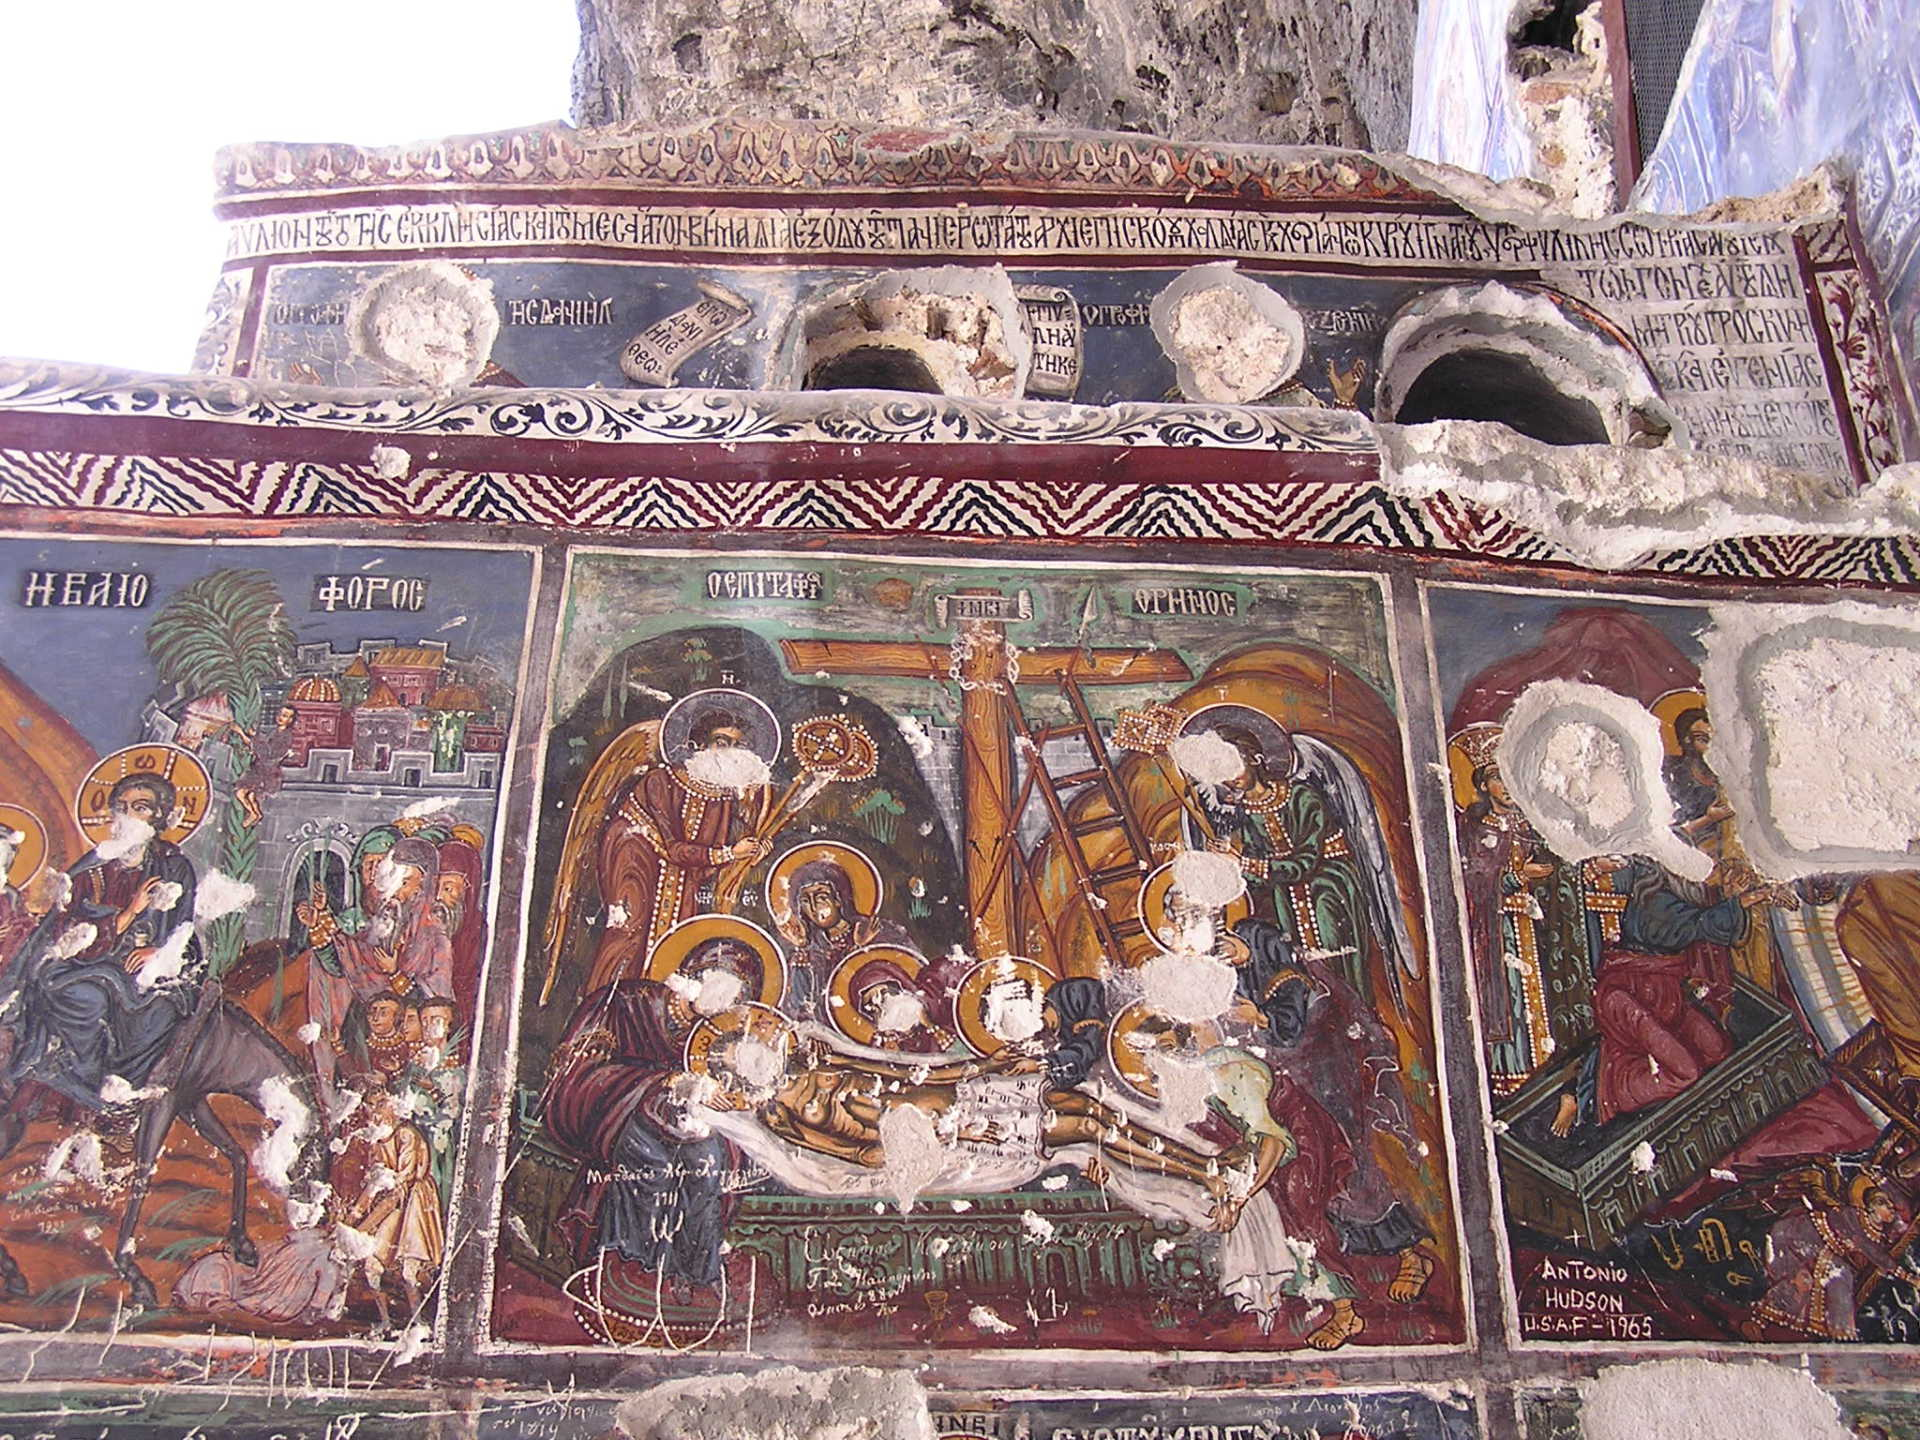 Sadly, Sumela's religious frescoes have been defaced over the years. Trabzon, Turkey, chap 43, You must only to love them. http://mershon.wordpress.com